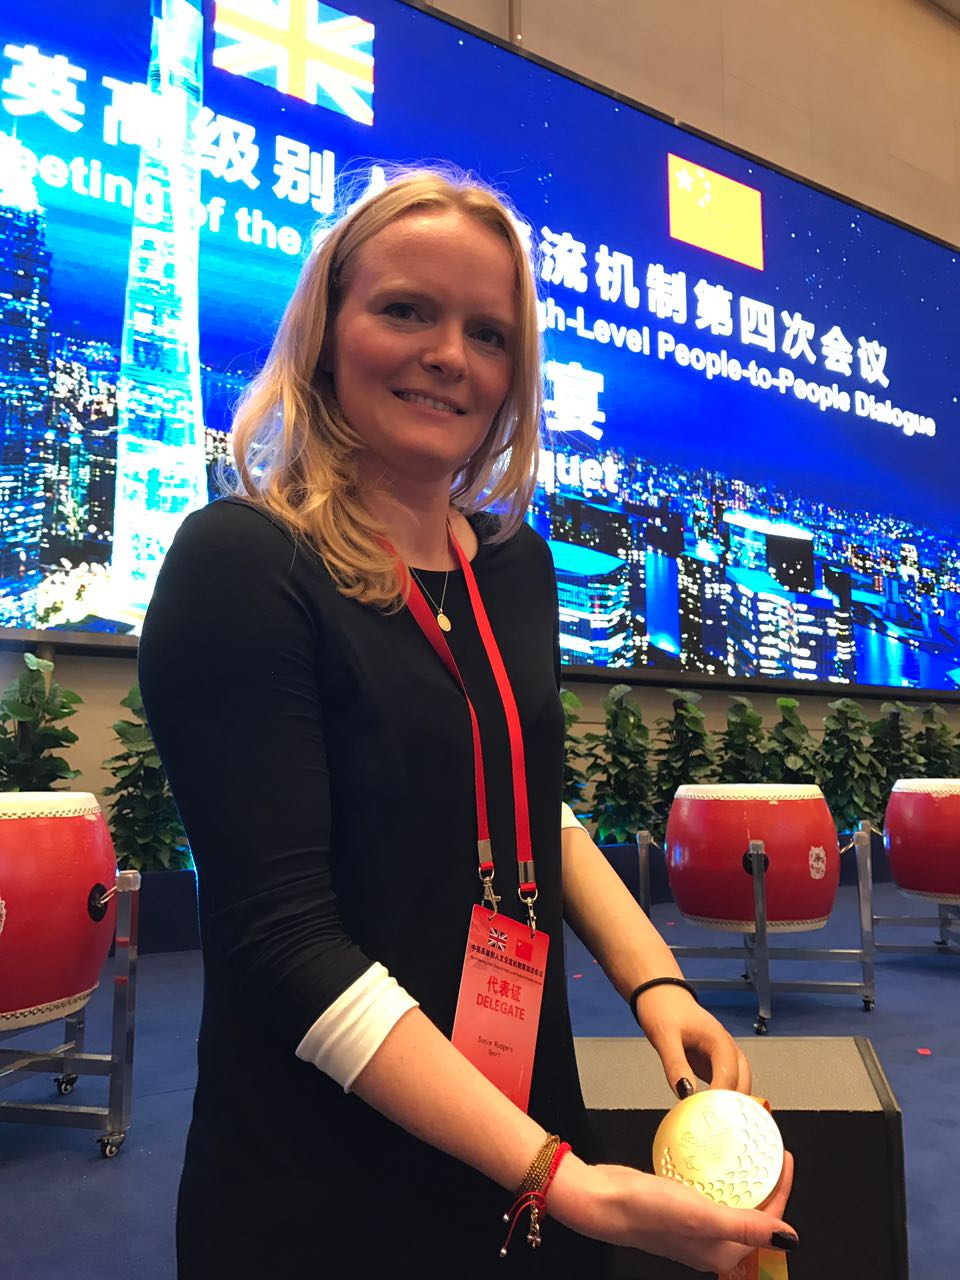 Susie at the 2016 China-UK High-Level People to People Dialogue, in Shanghai